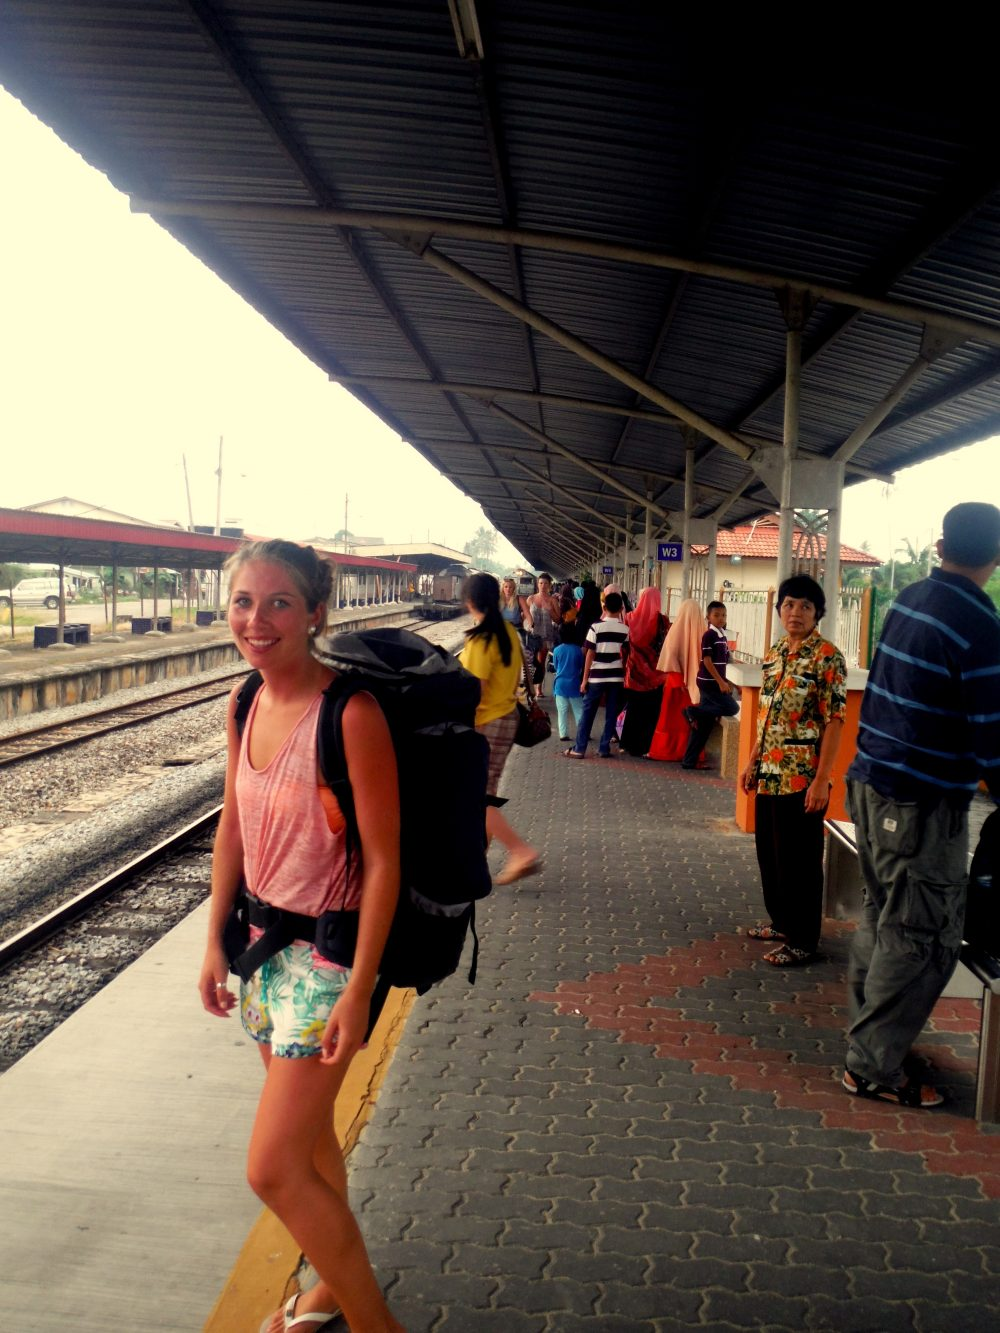 Taking the train around Malaysia